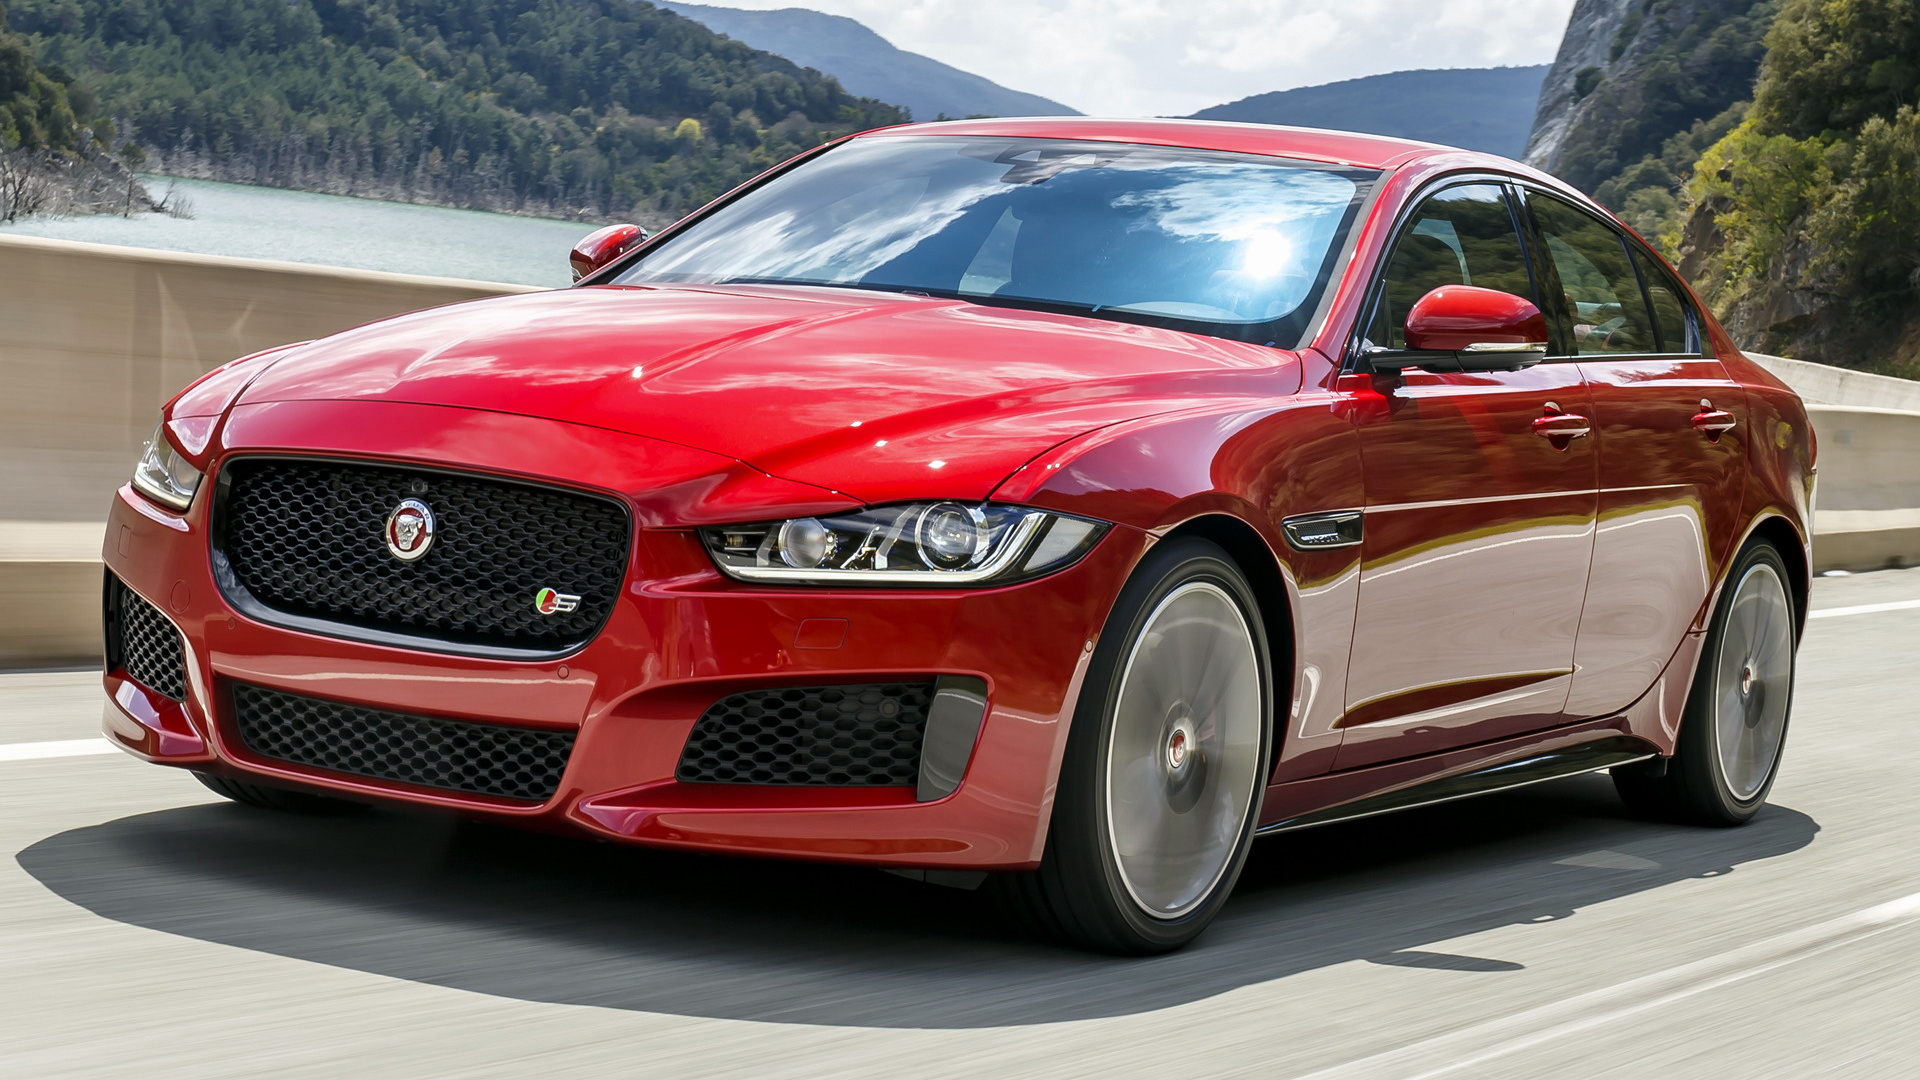 2015 jaguar xe s wallpapers and hd images car pixel. Black Bedroom Furniture Sets. Home Design Ideas